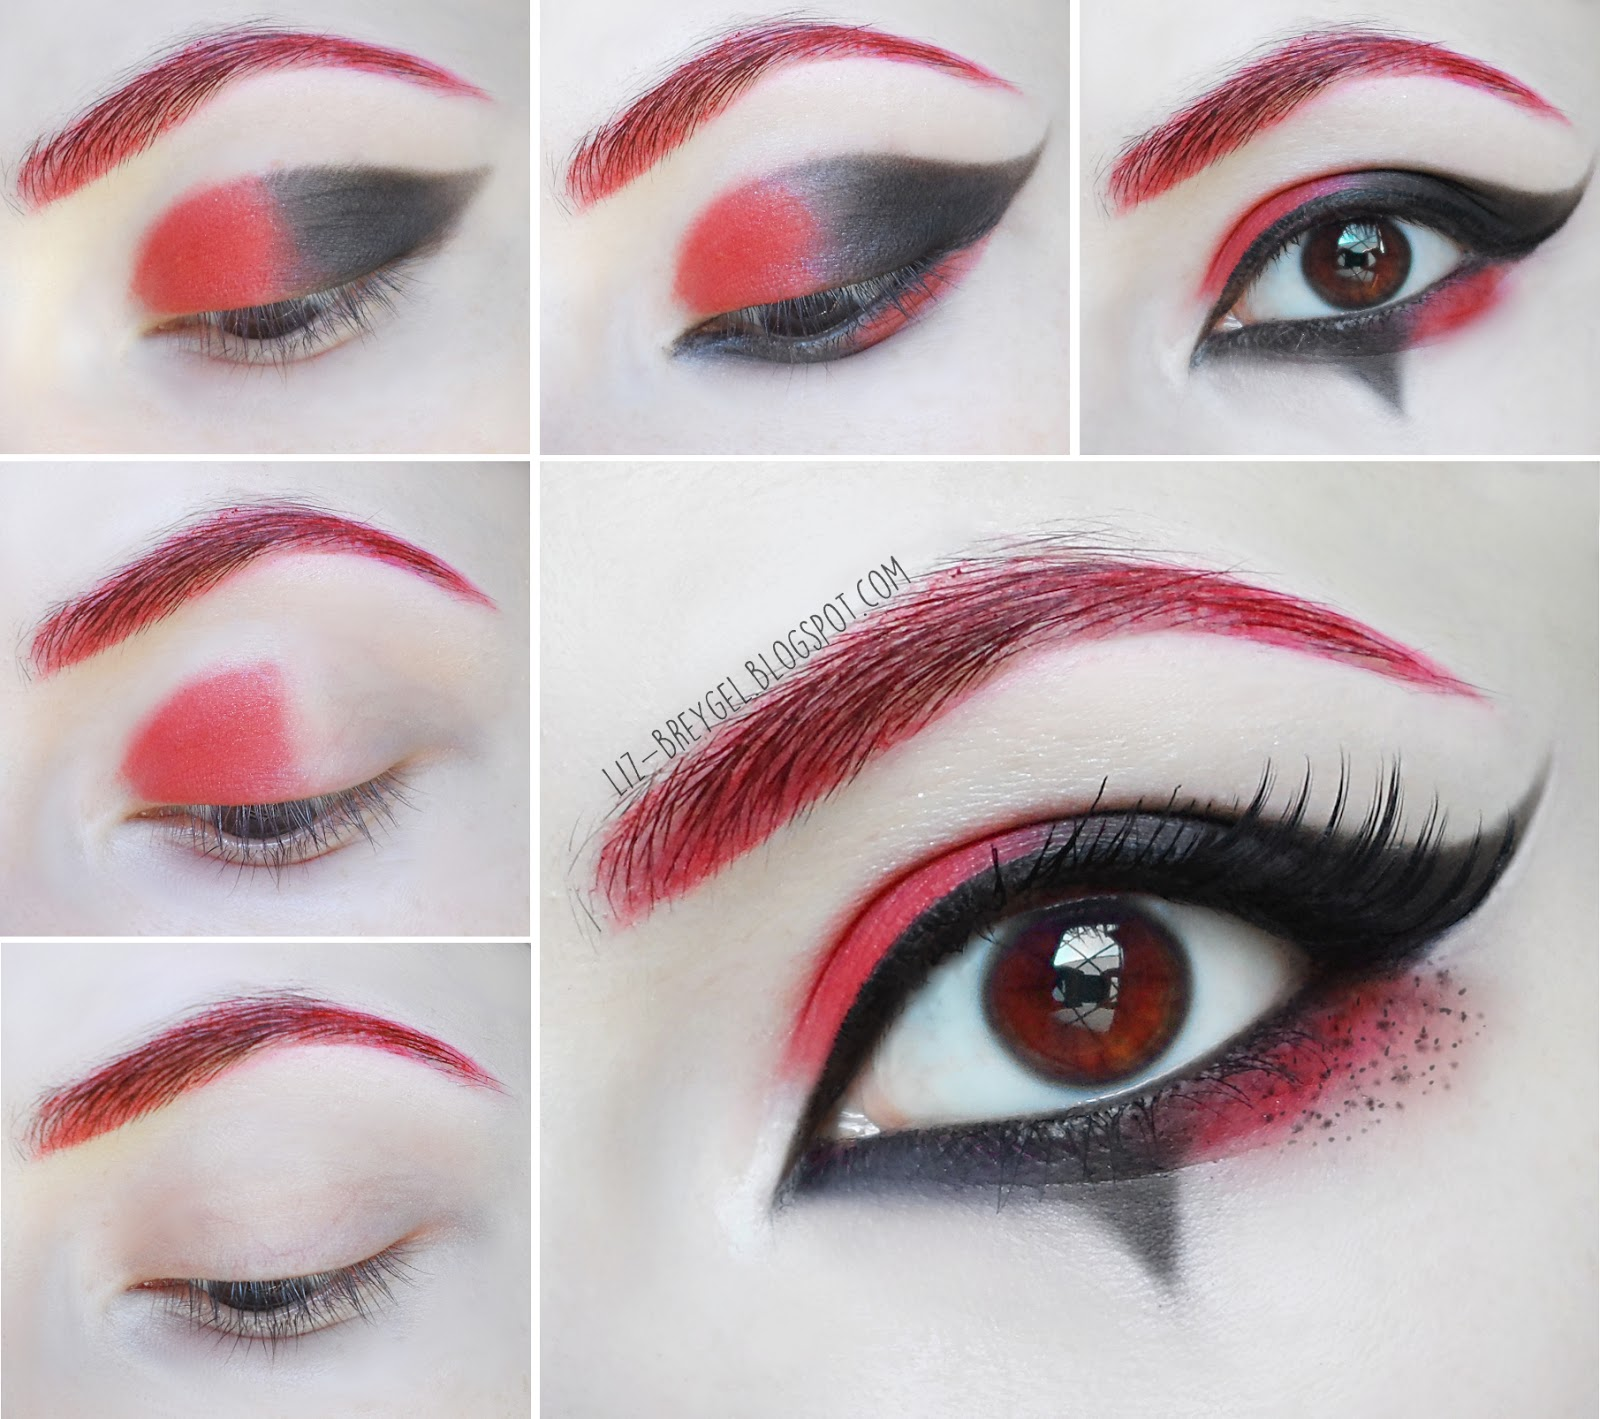 shemale cosplay makeup ideas